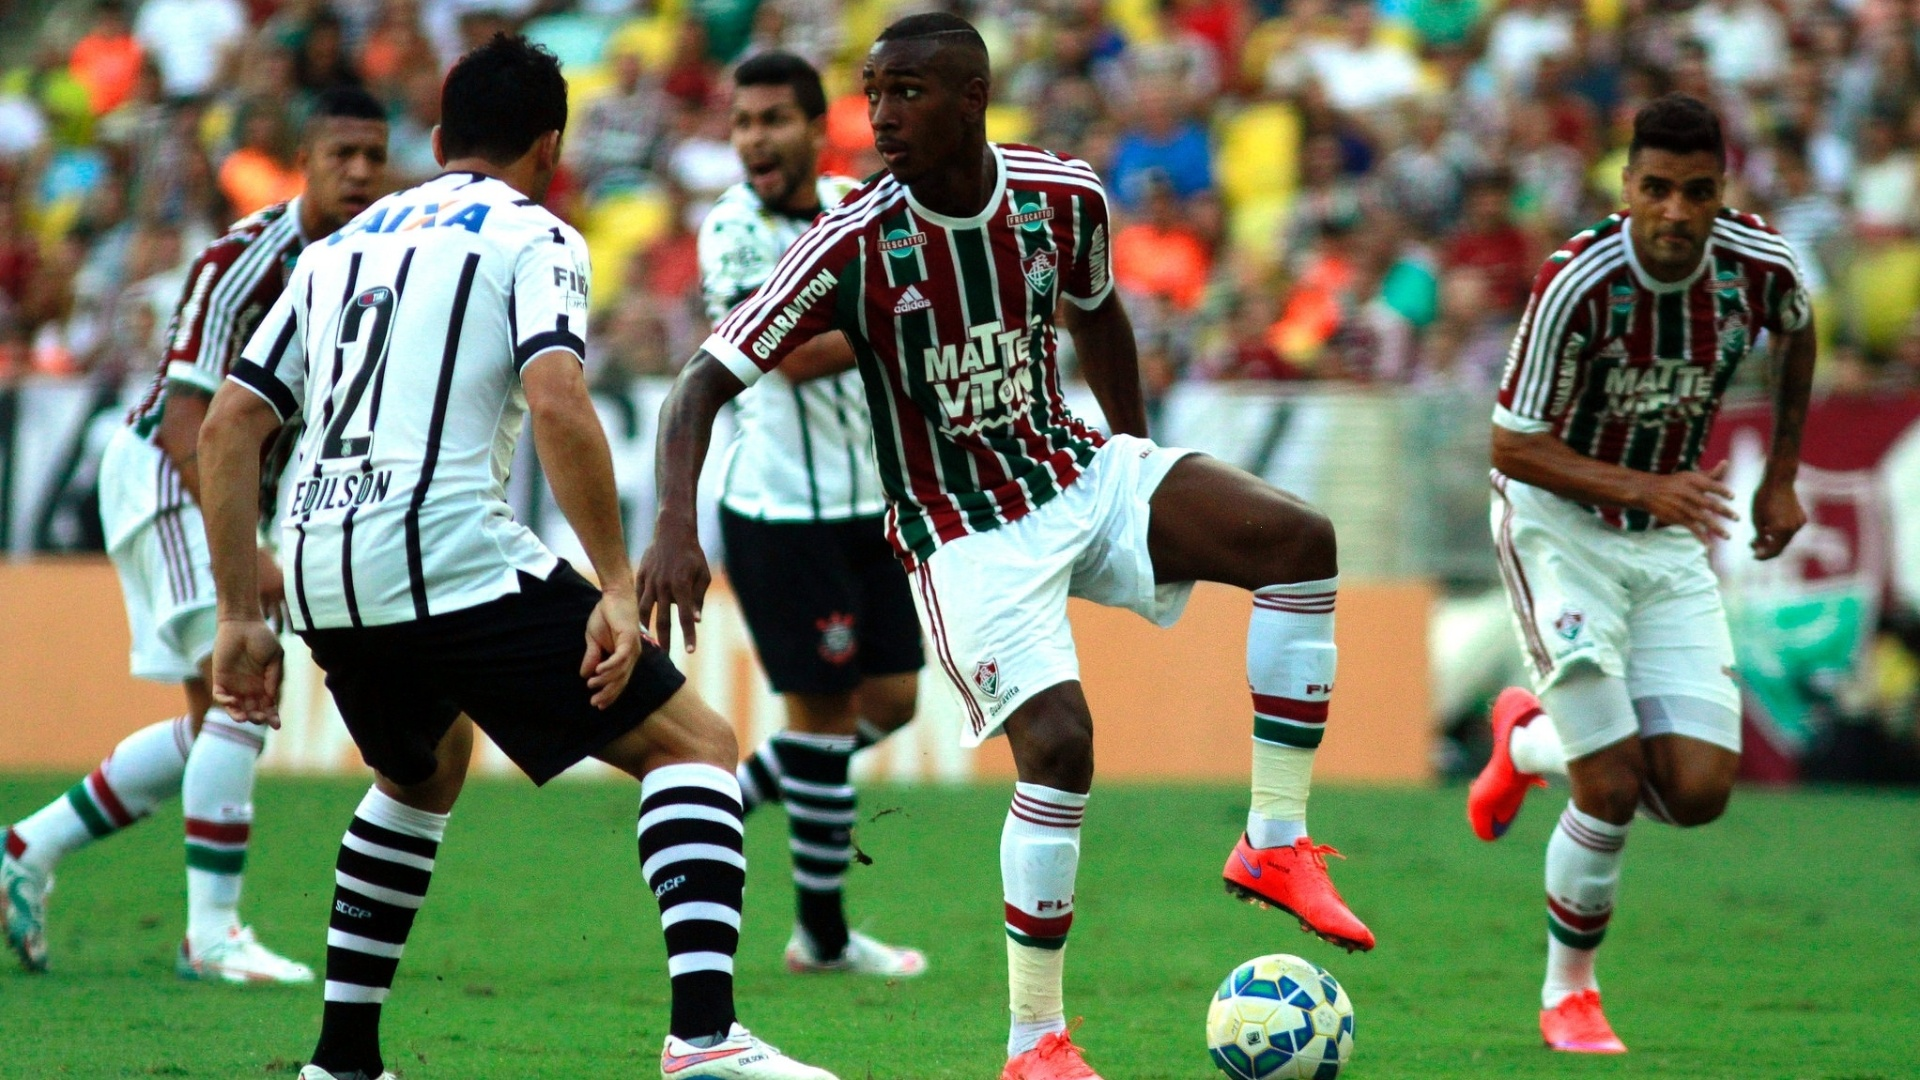 gerson-revelacao-das-categorias-de-base-do-fluminense-domina-a-bola-no-jogo-contra-o-corinthians-1432498794883_1920x1080